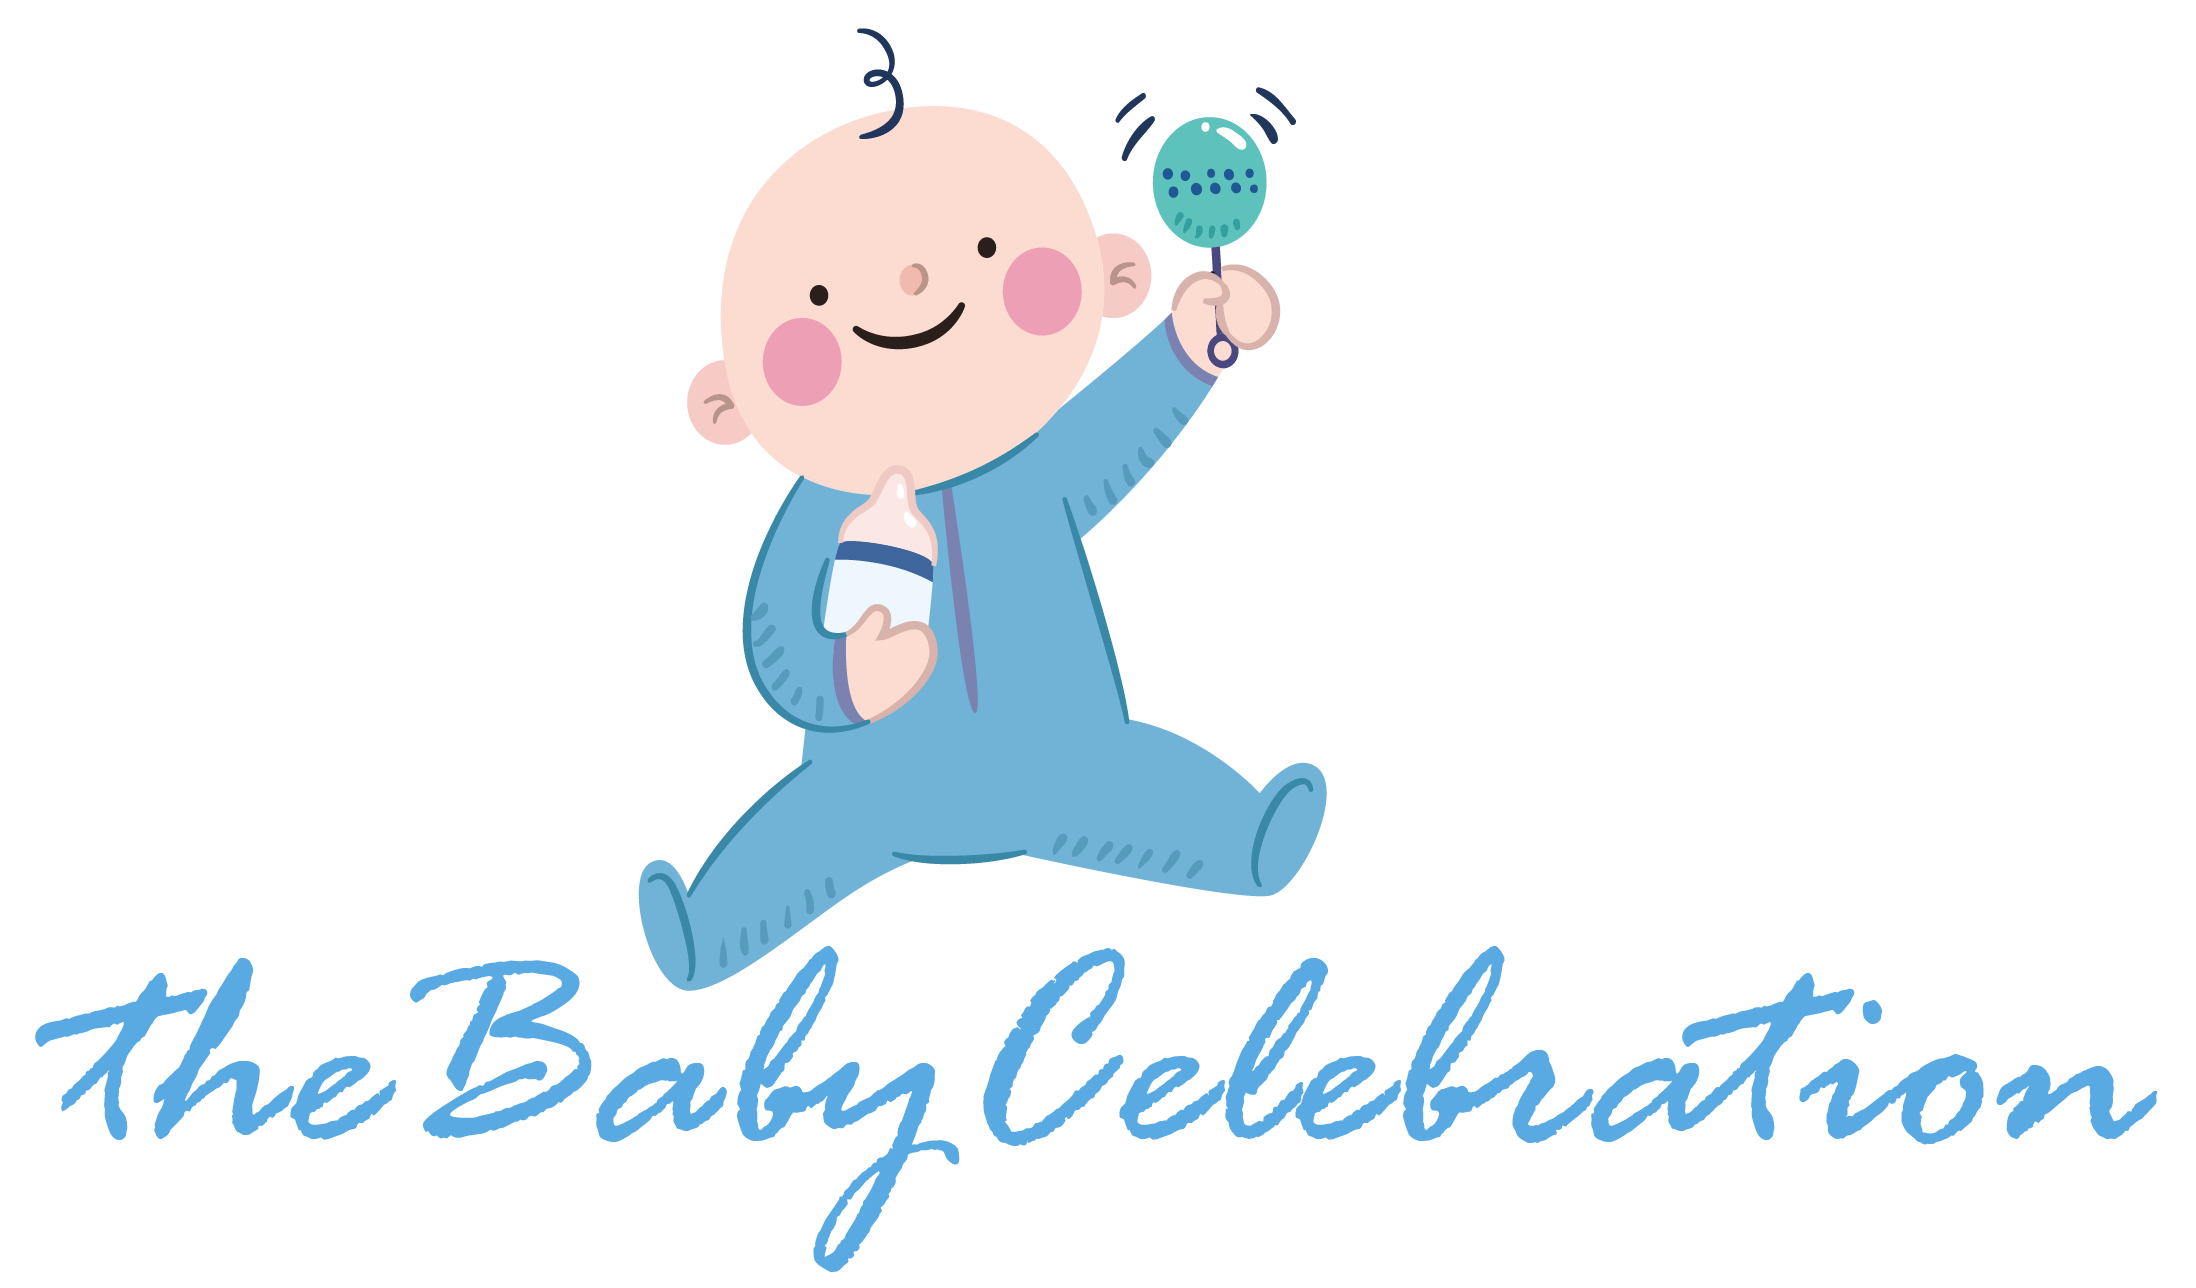 Twinkle twinkle little star baby shower clipart png freeuse library The Ultimate Baby Shower Planning Guide | TheBabyCelebration.com png freeuse library